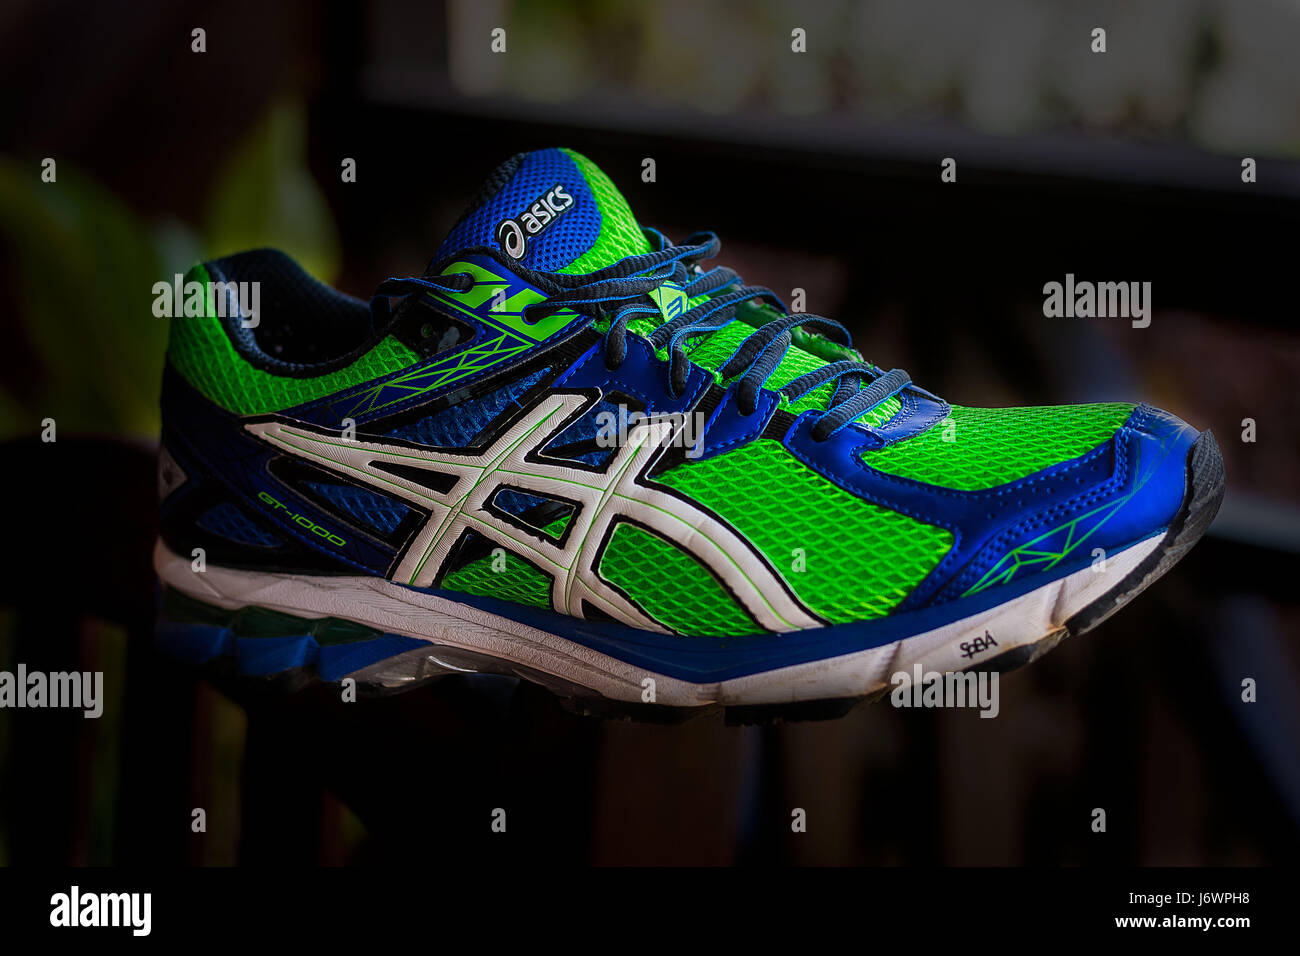 Asics Shoes pictures for advertising in print or on